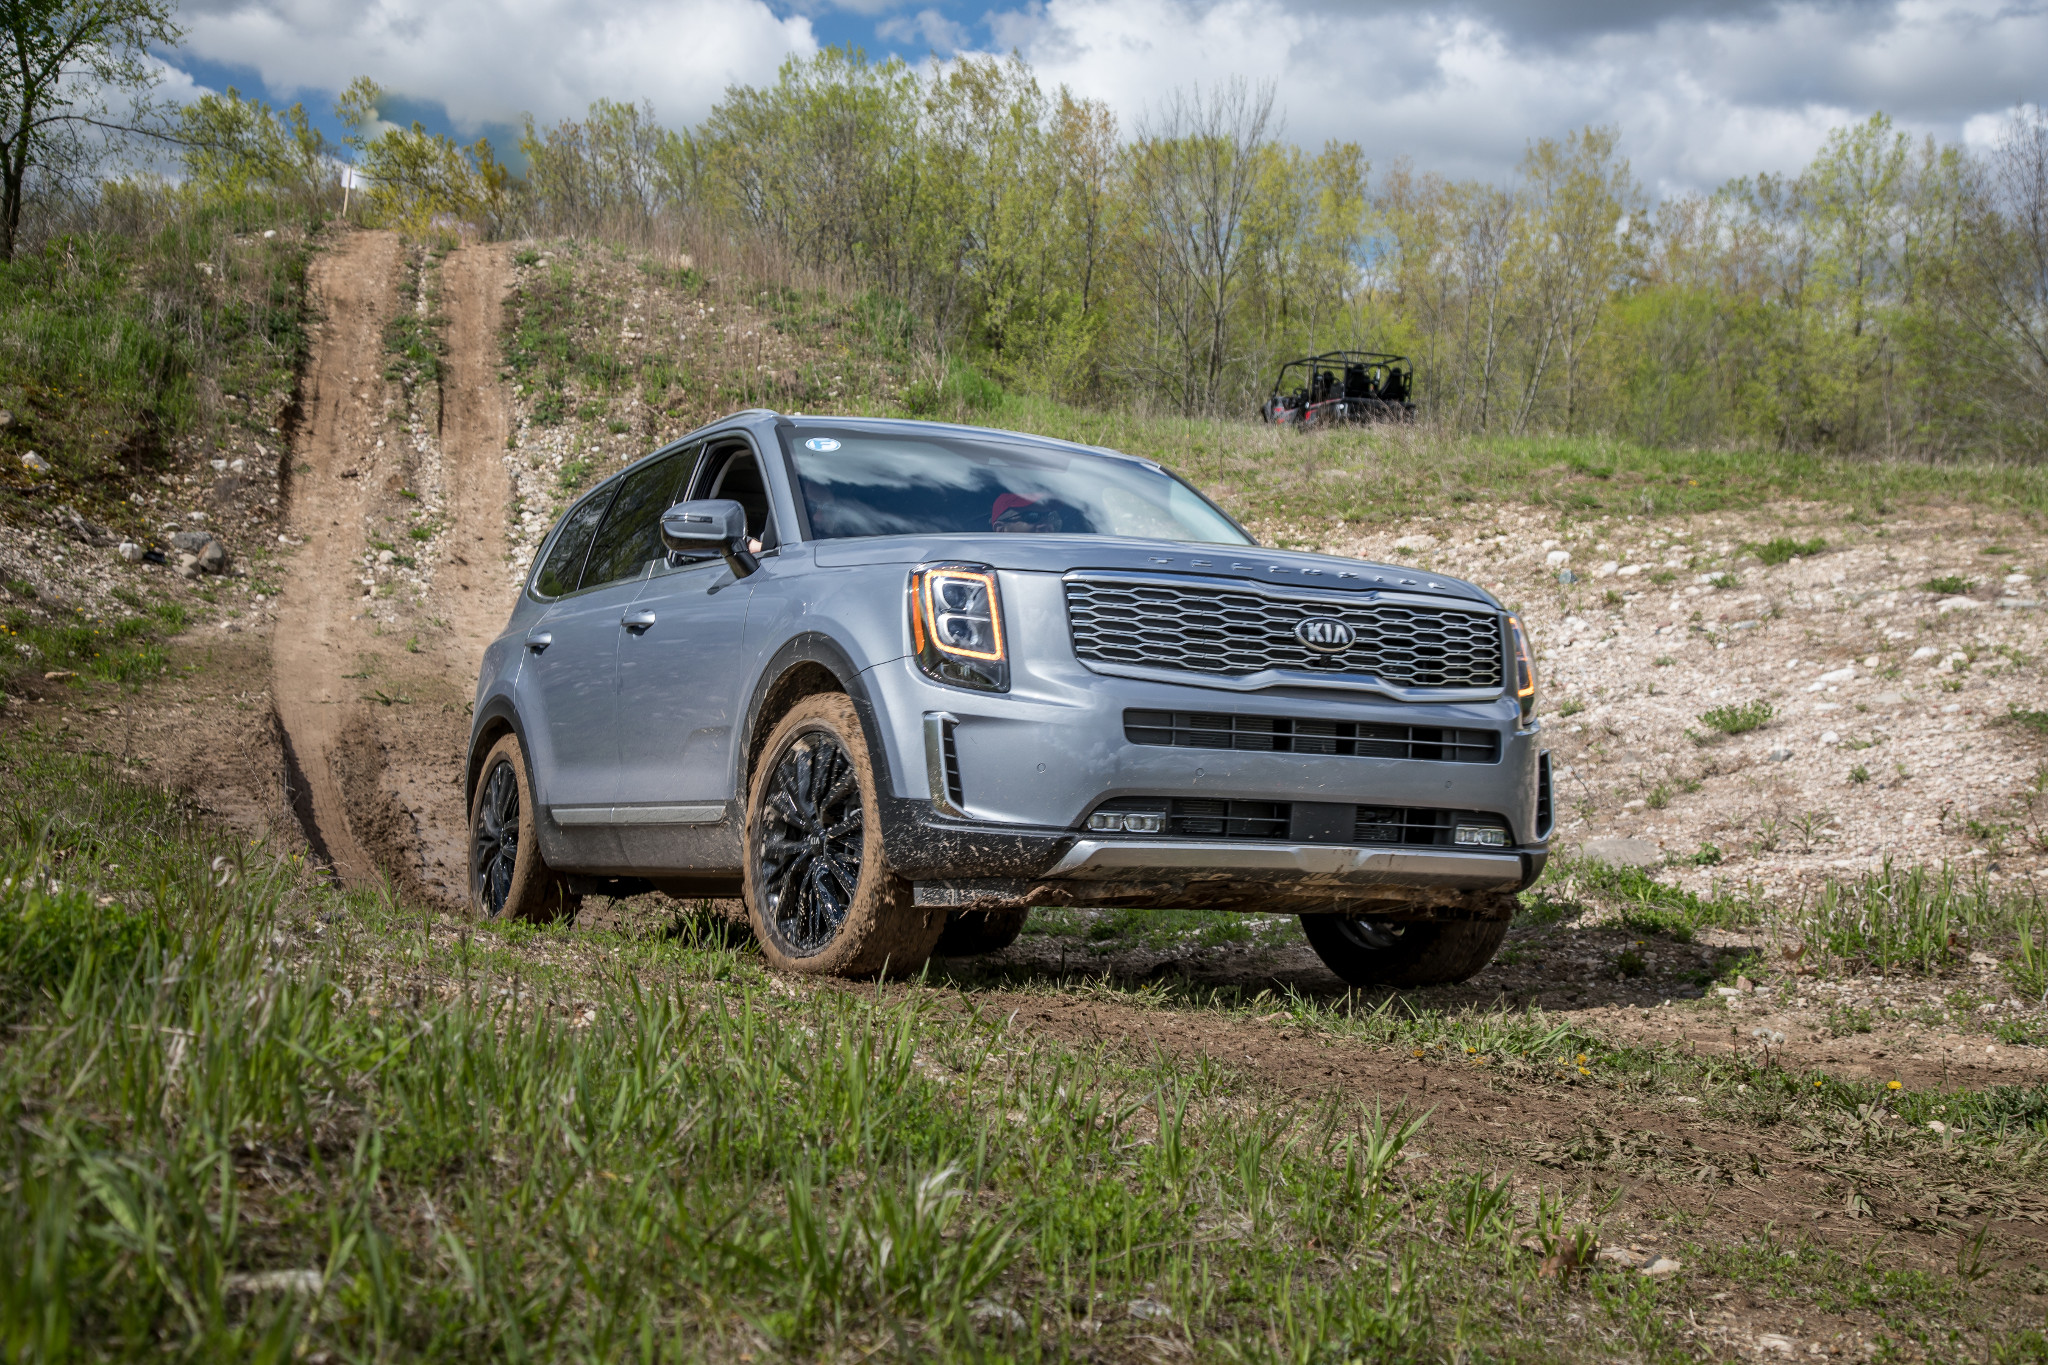 Most Popular All-Wheel-Drive SUVs on Cars.com